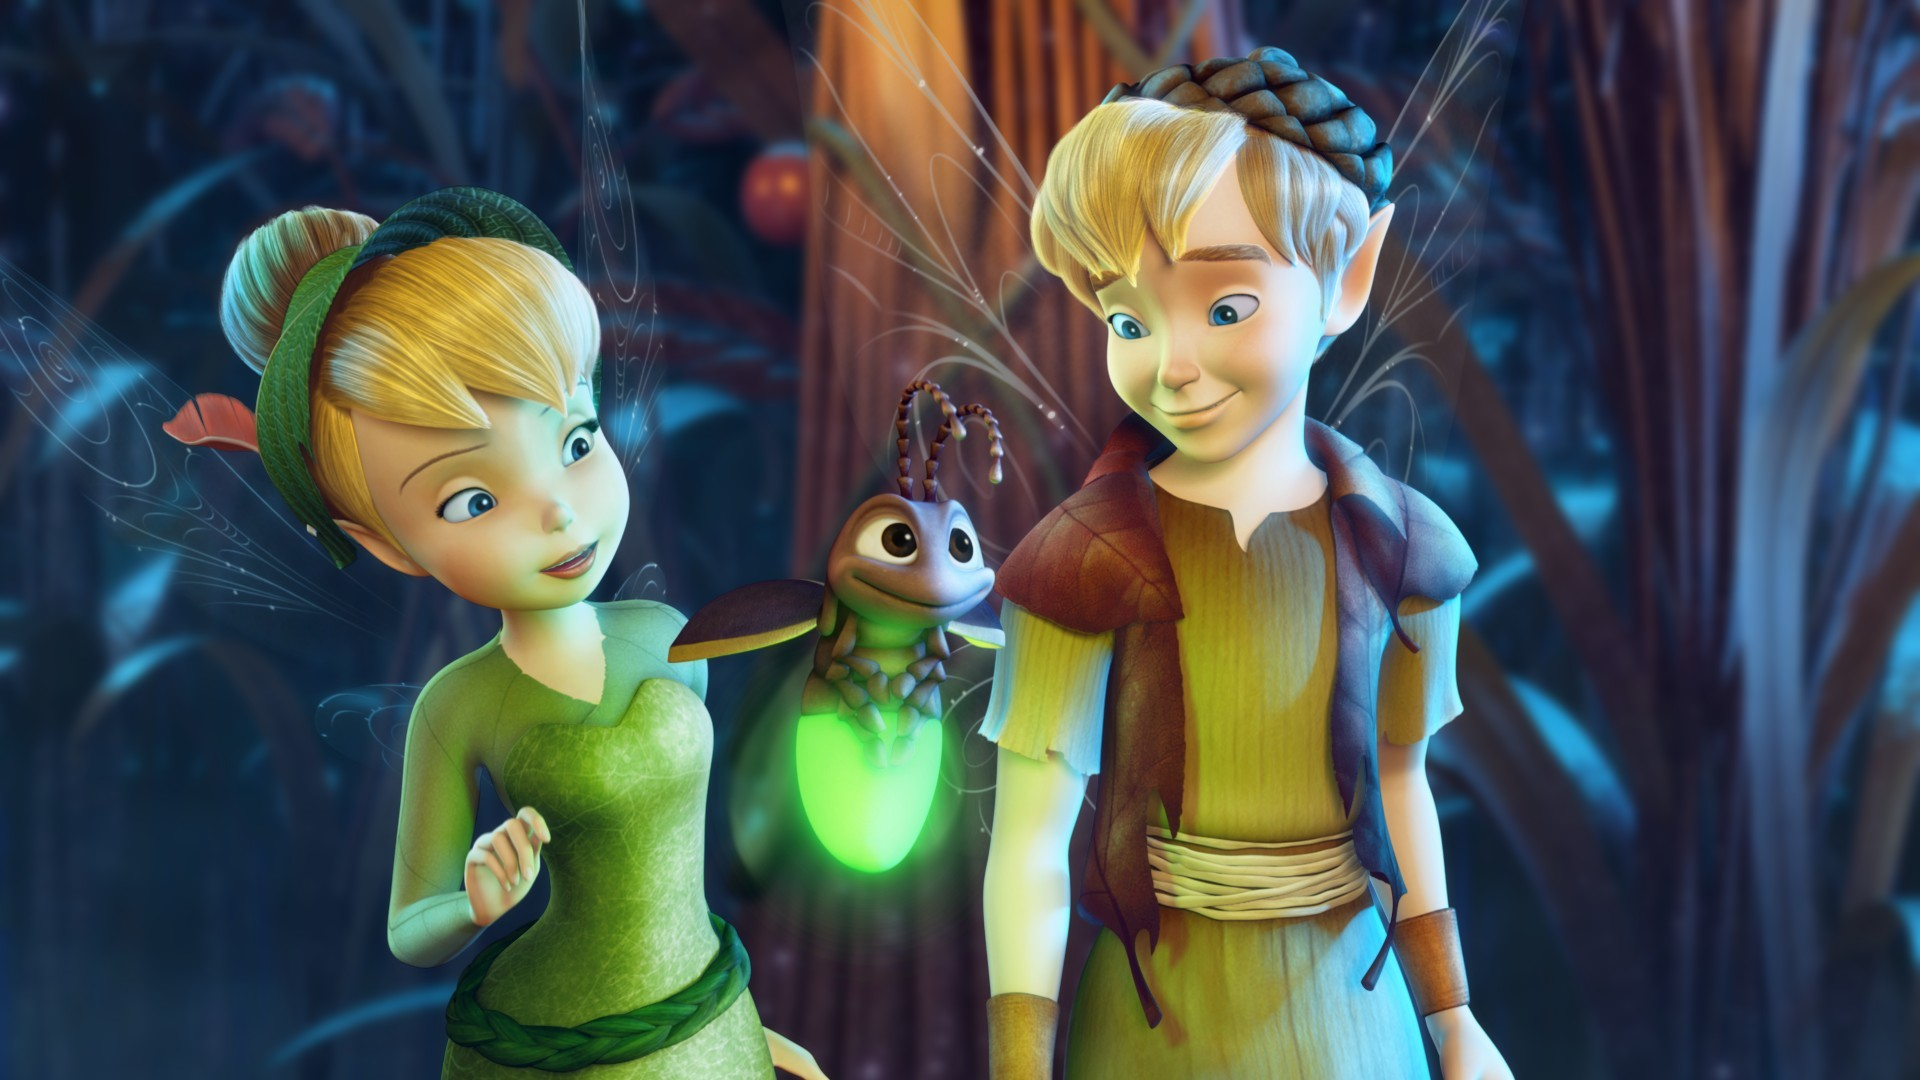 Res: 1920x1080, Film 2 Tinkerbell, Blitz und Terence.jpg